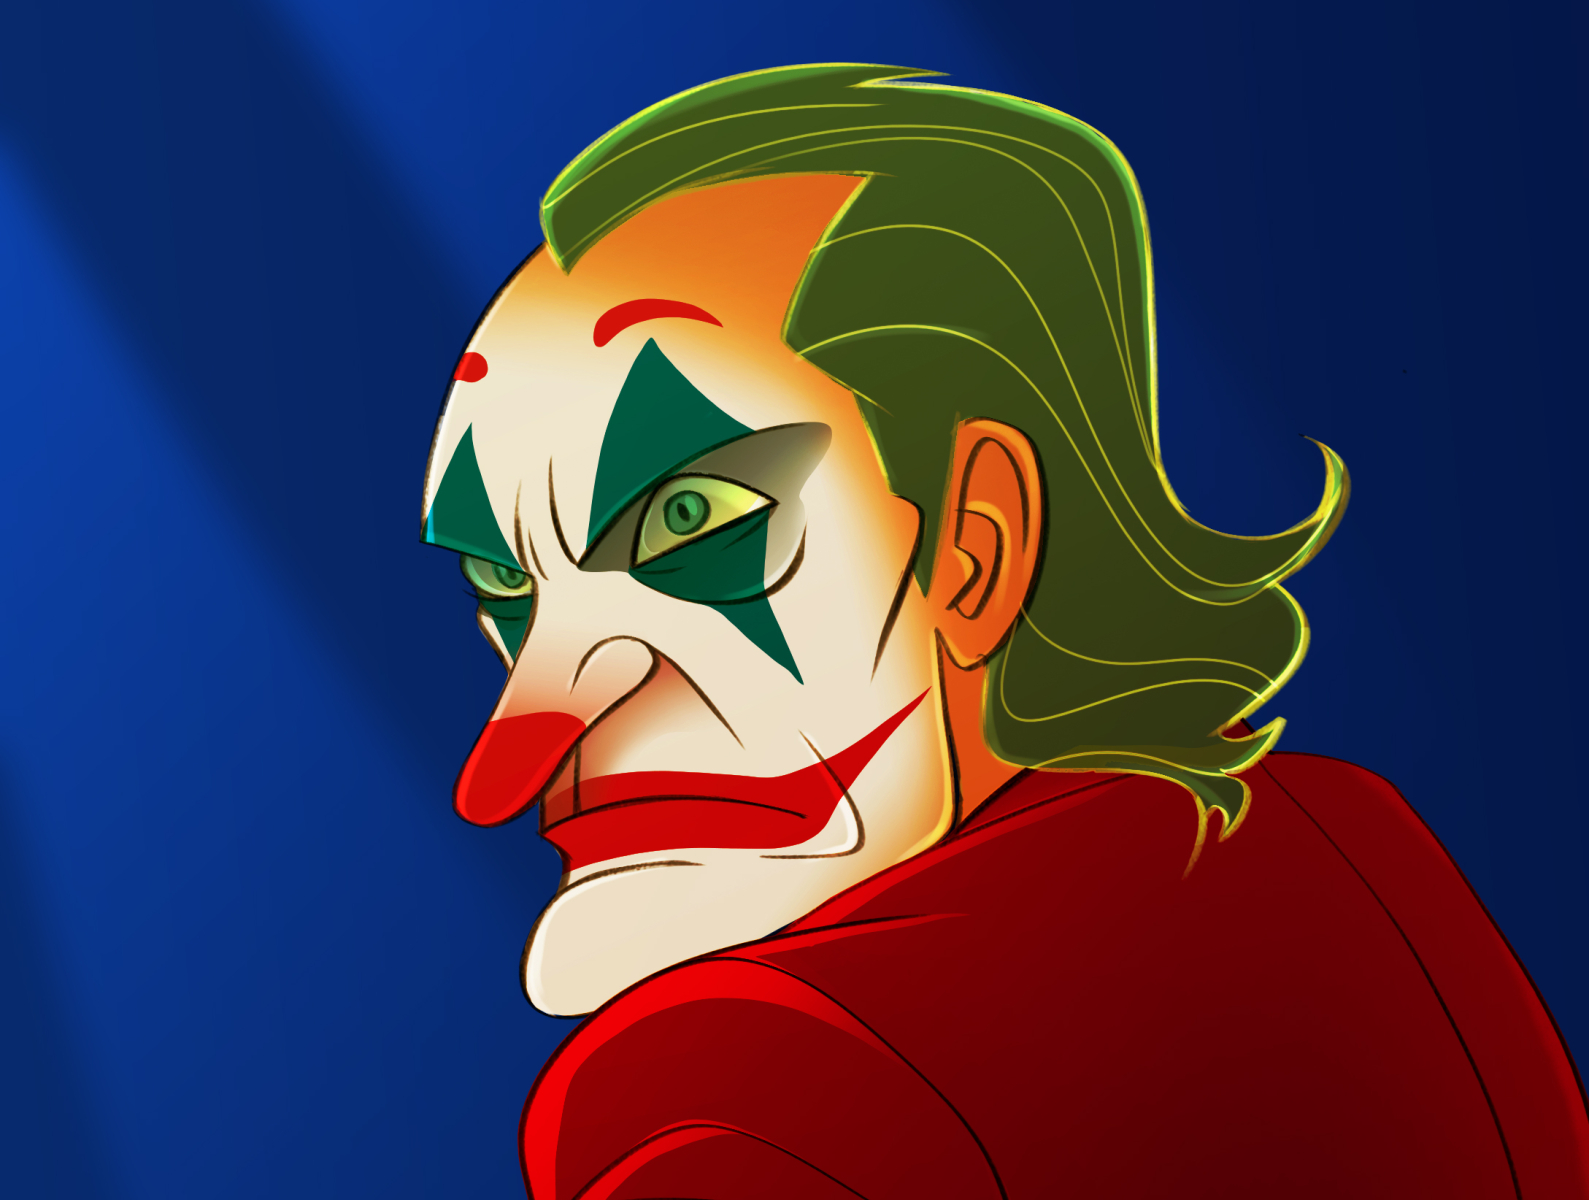 Joker By Mithat Gokce On Dribbble